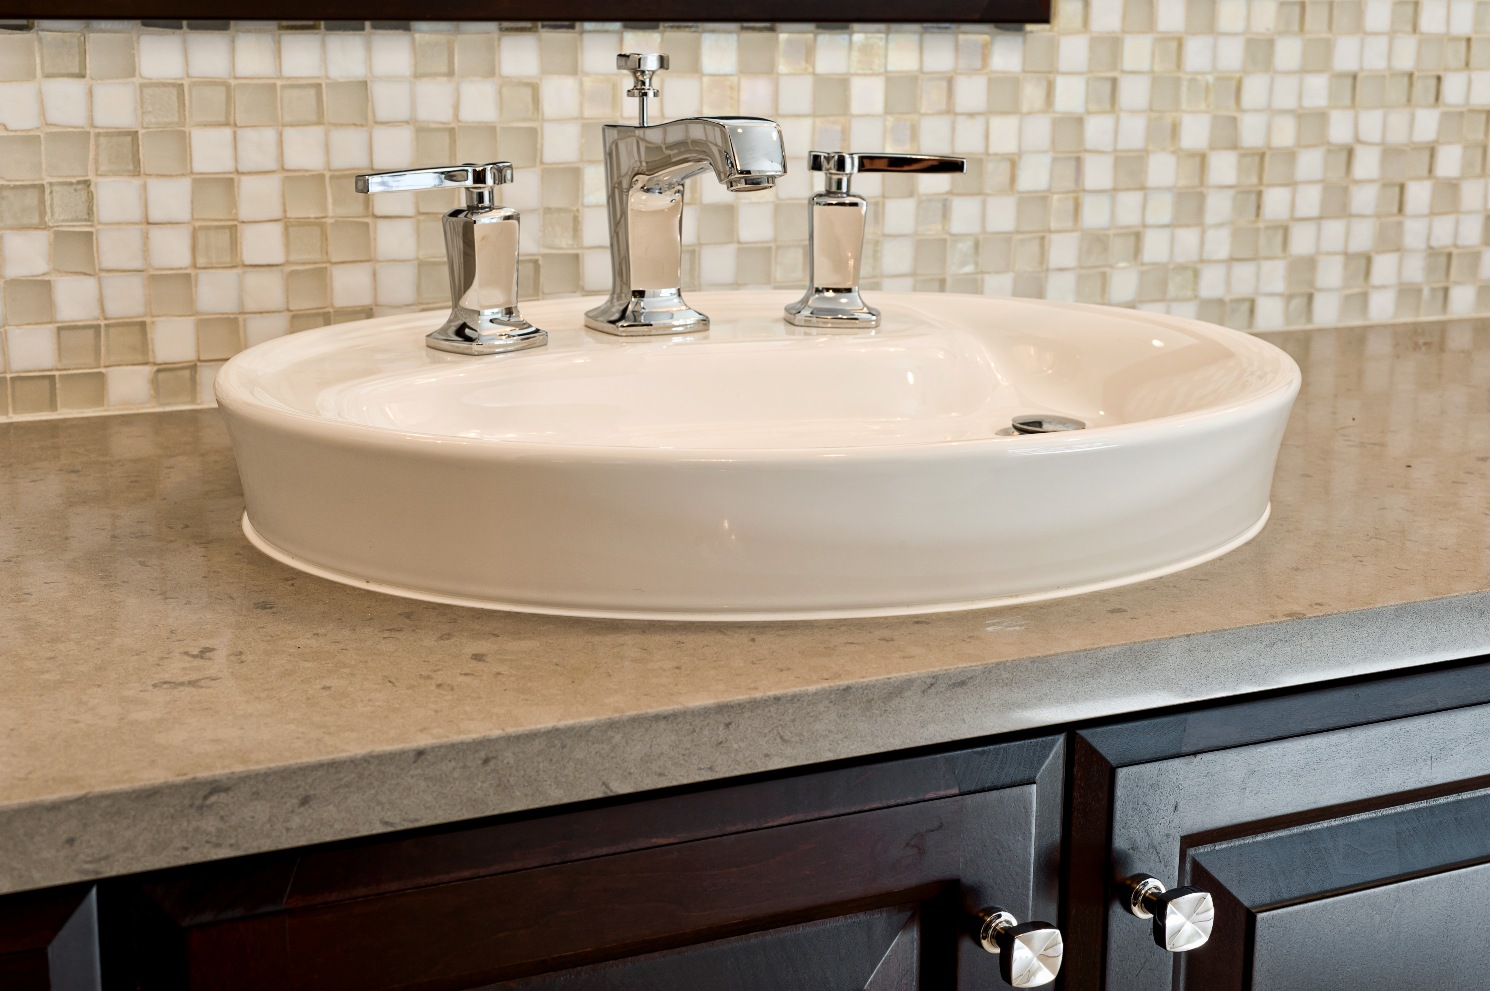 Caesarstone countertop with white sink and faucet plus mosaic tile back splash for bathroom decor ideas